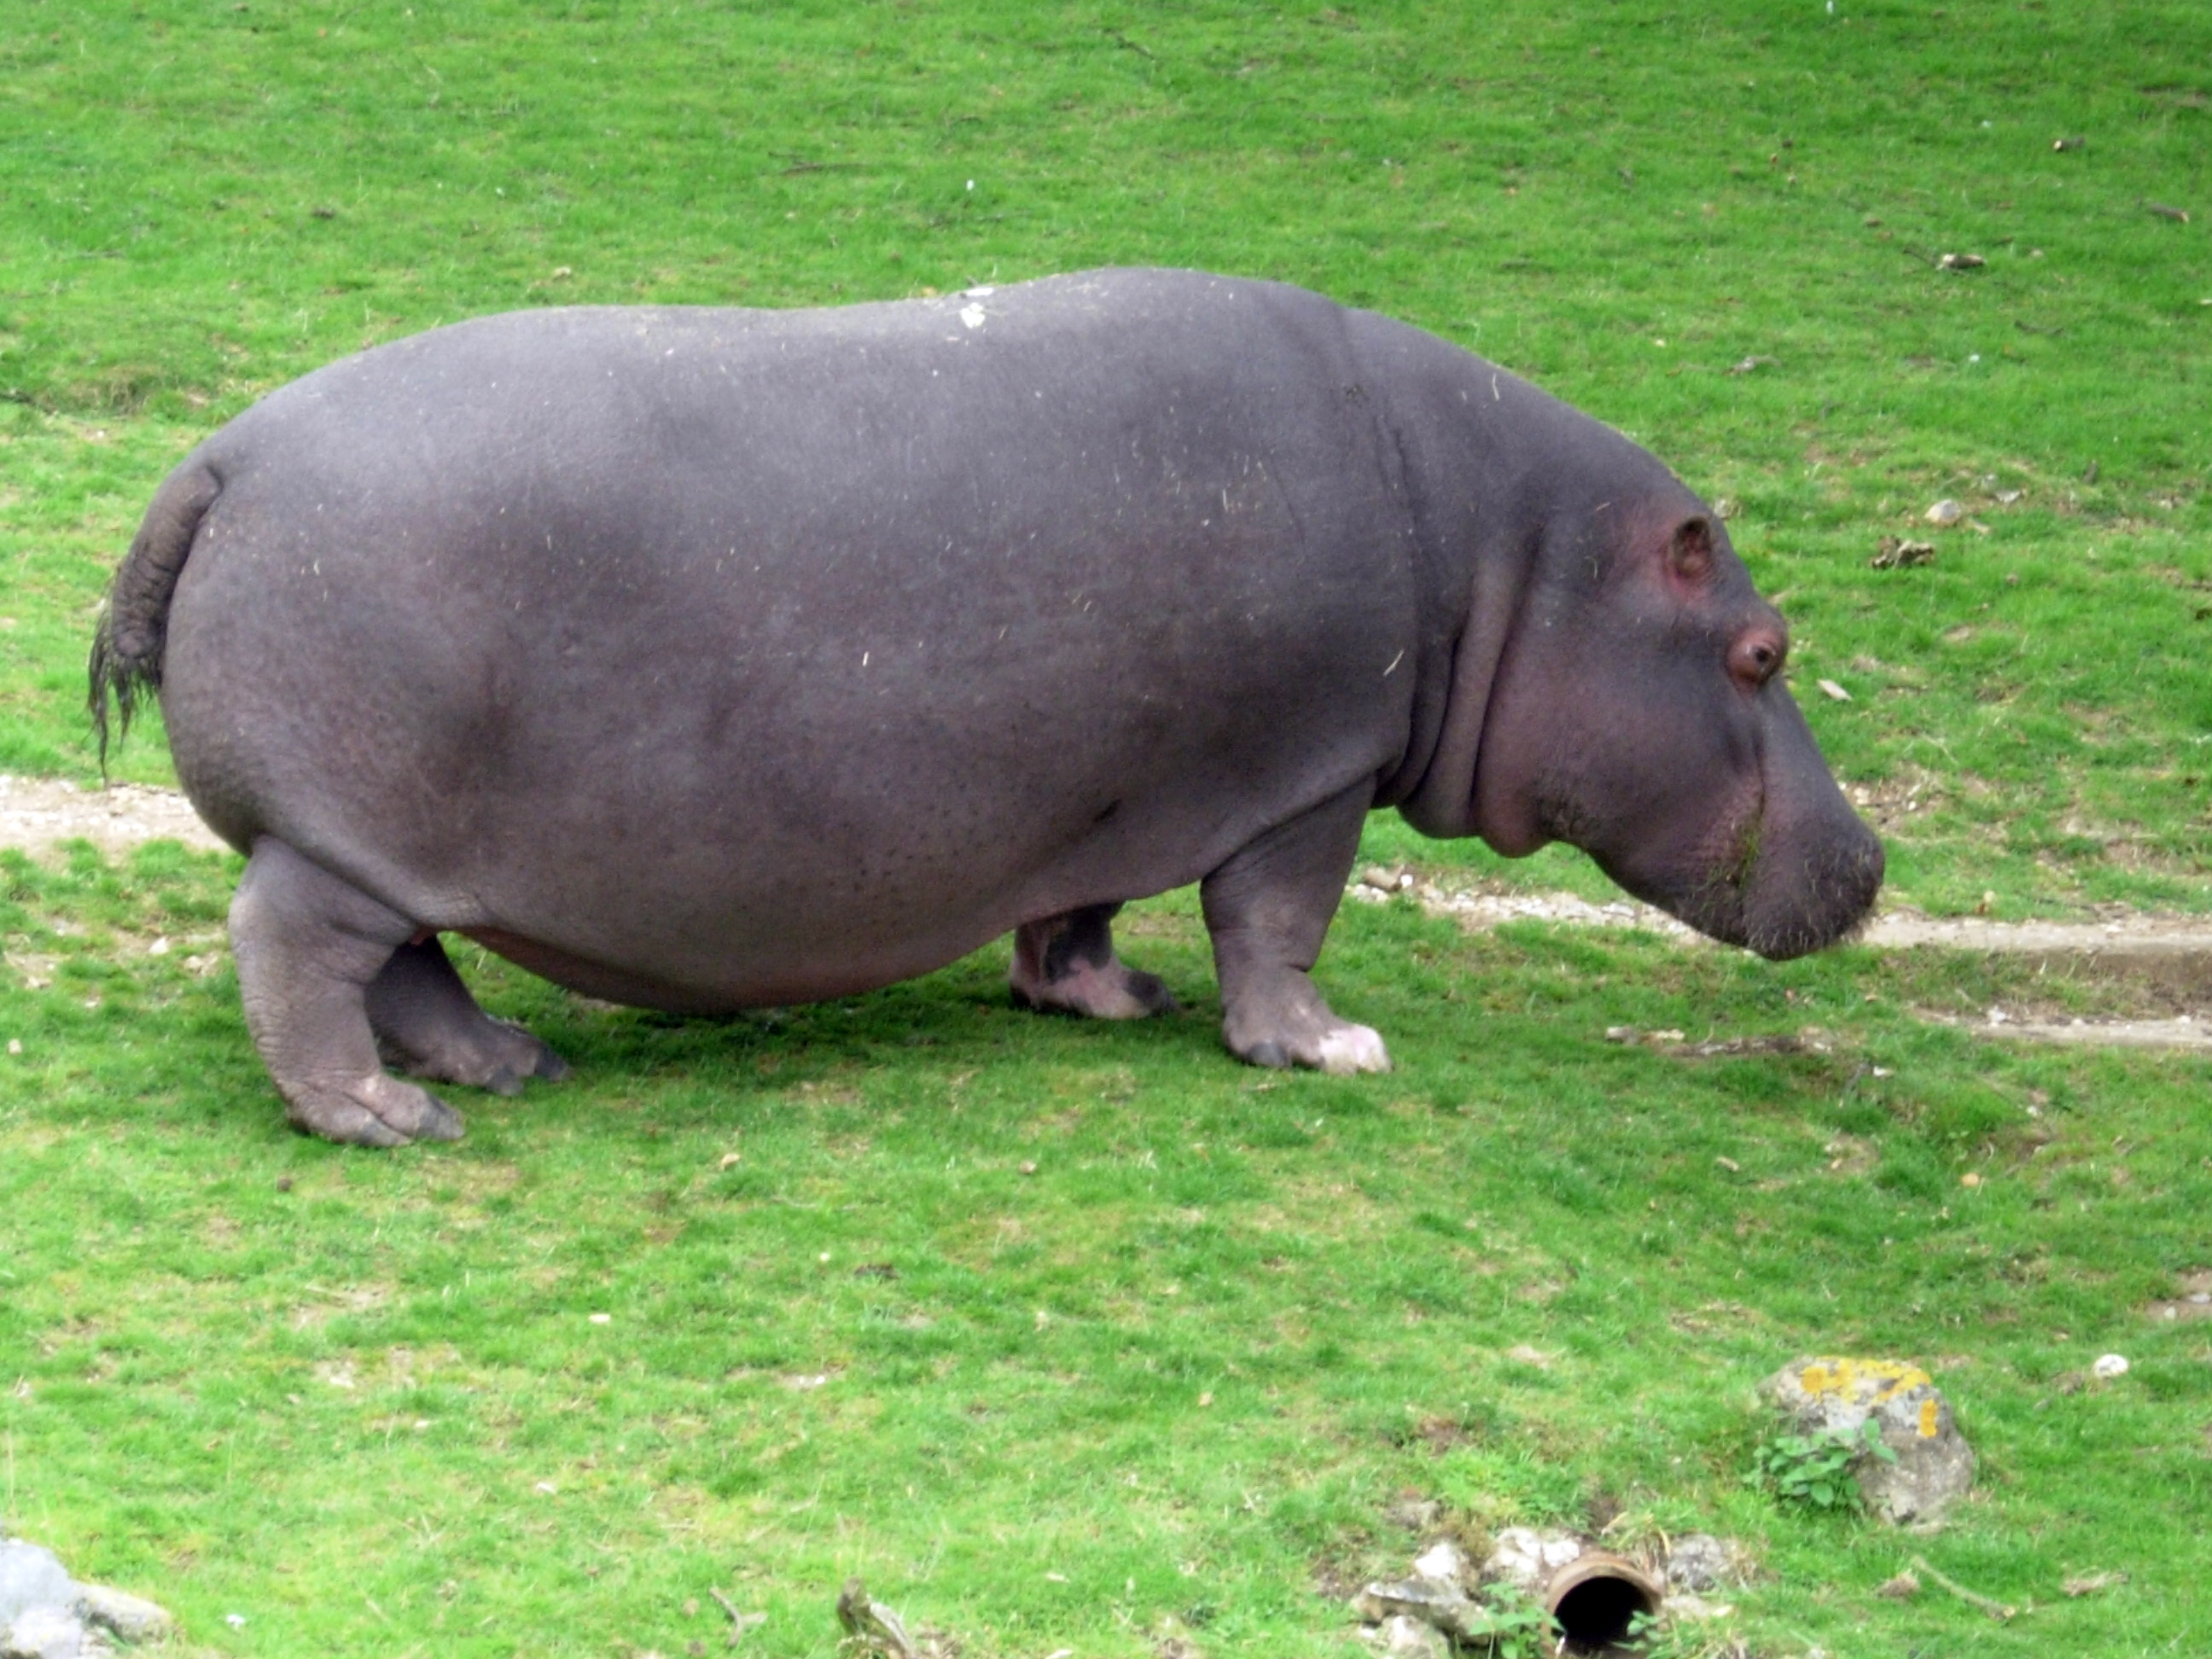 In the wild the hippo can be found East, Central West and South Africa in slow flowing rivers lakes and swamps. They eat grass, fruit etc. They can live up to 40 years in the wild. They are the second heaviest mammals on earth and are dangerous. They secrete a reddish coloured liquid from their pore...